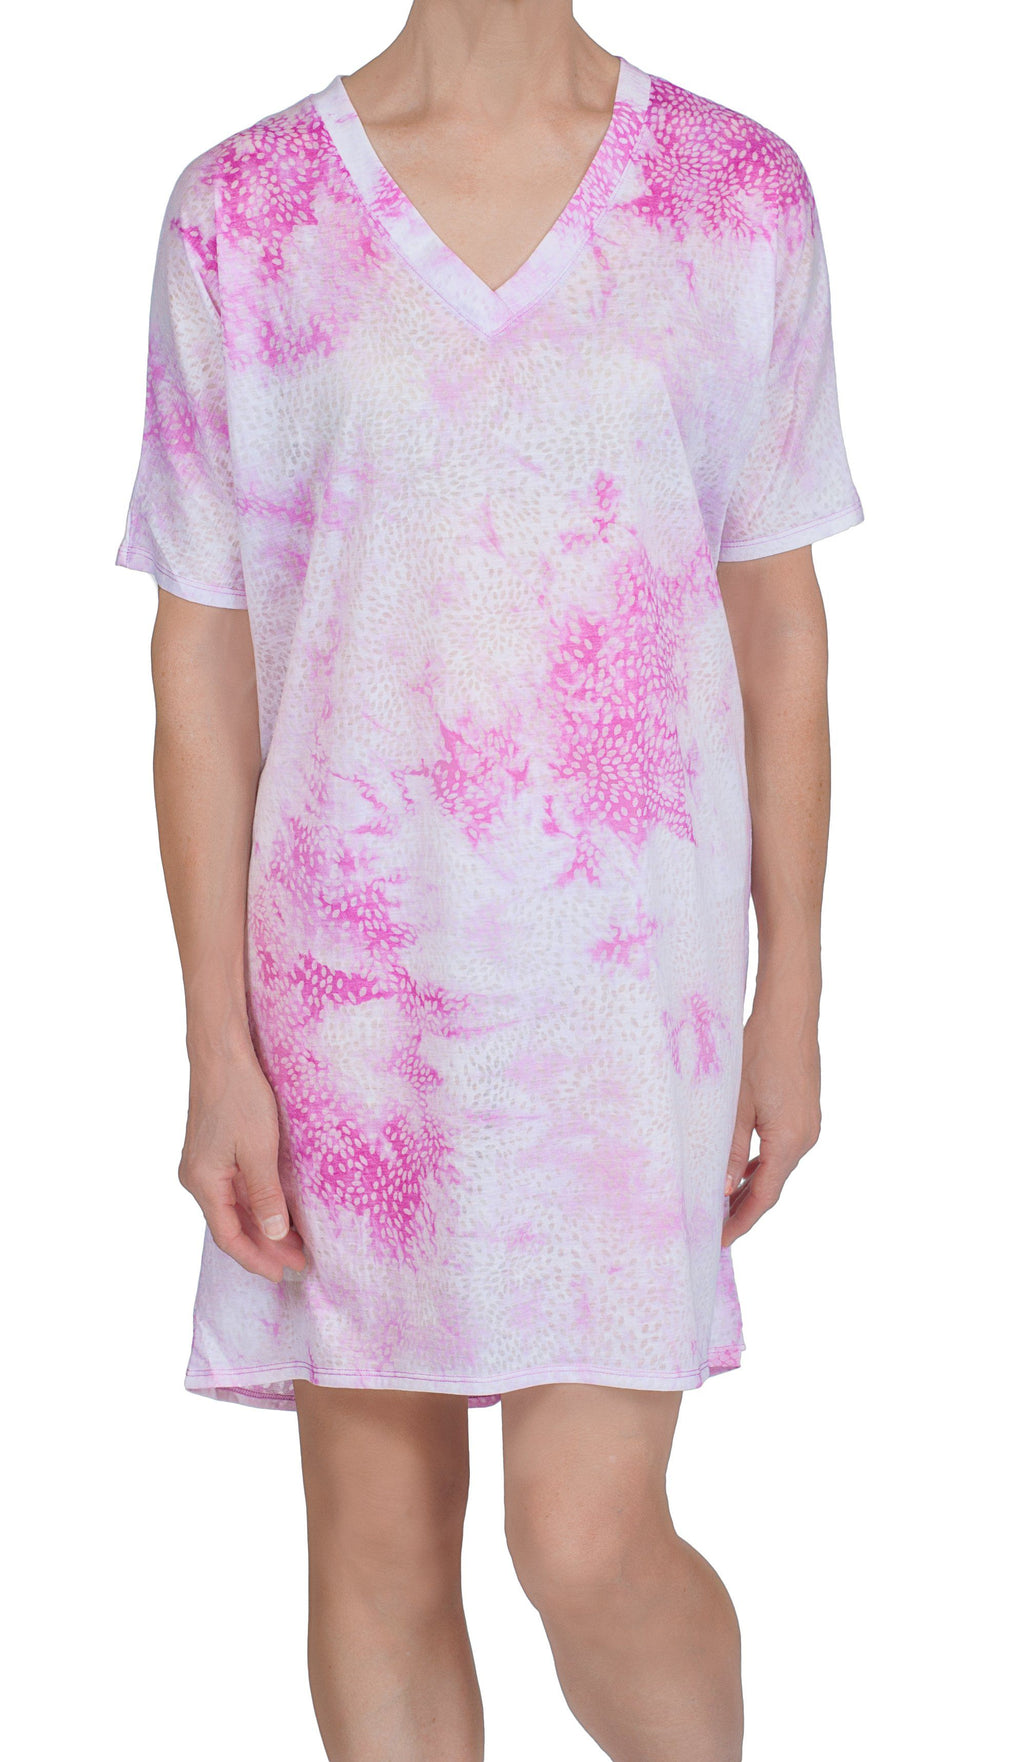 Artire Nightshirt - Rose Mystique Intimates